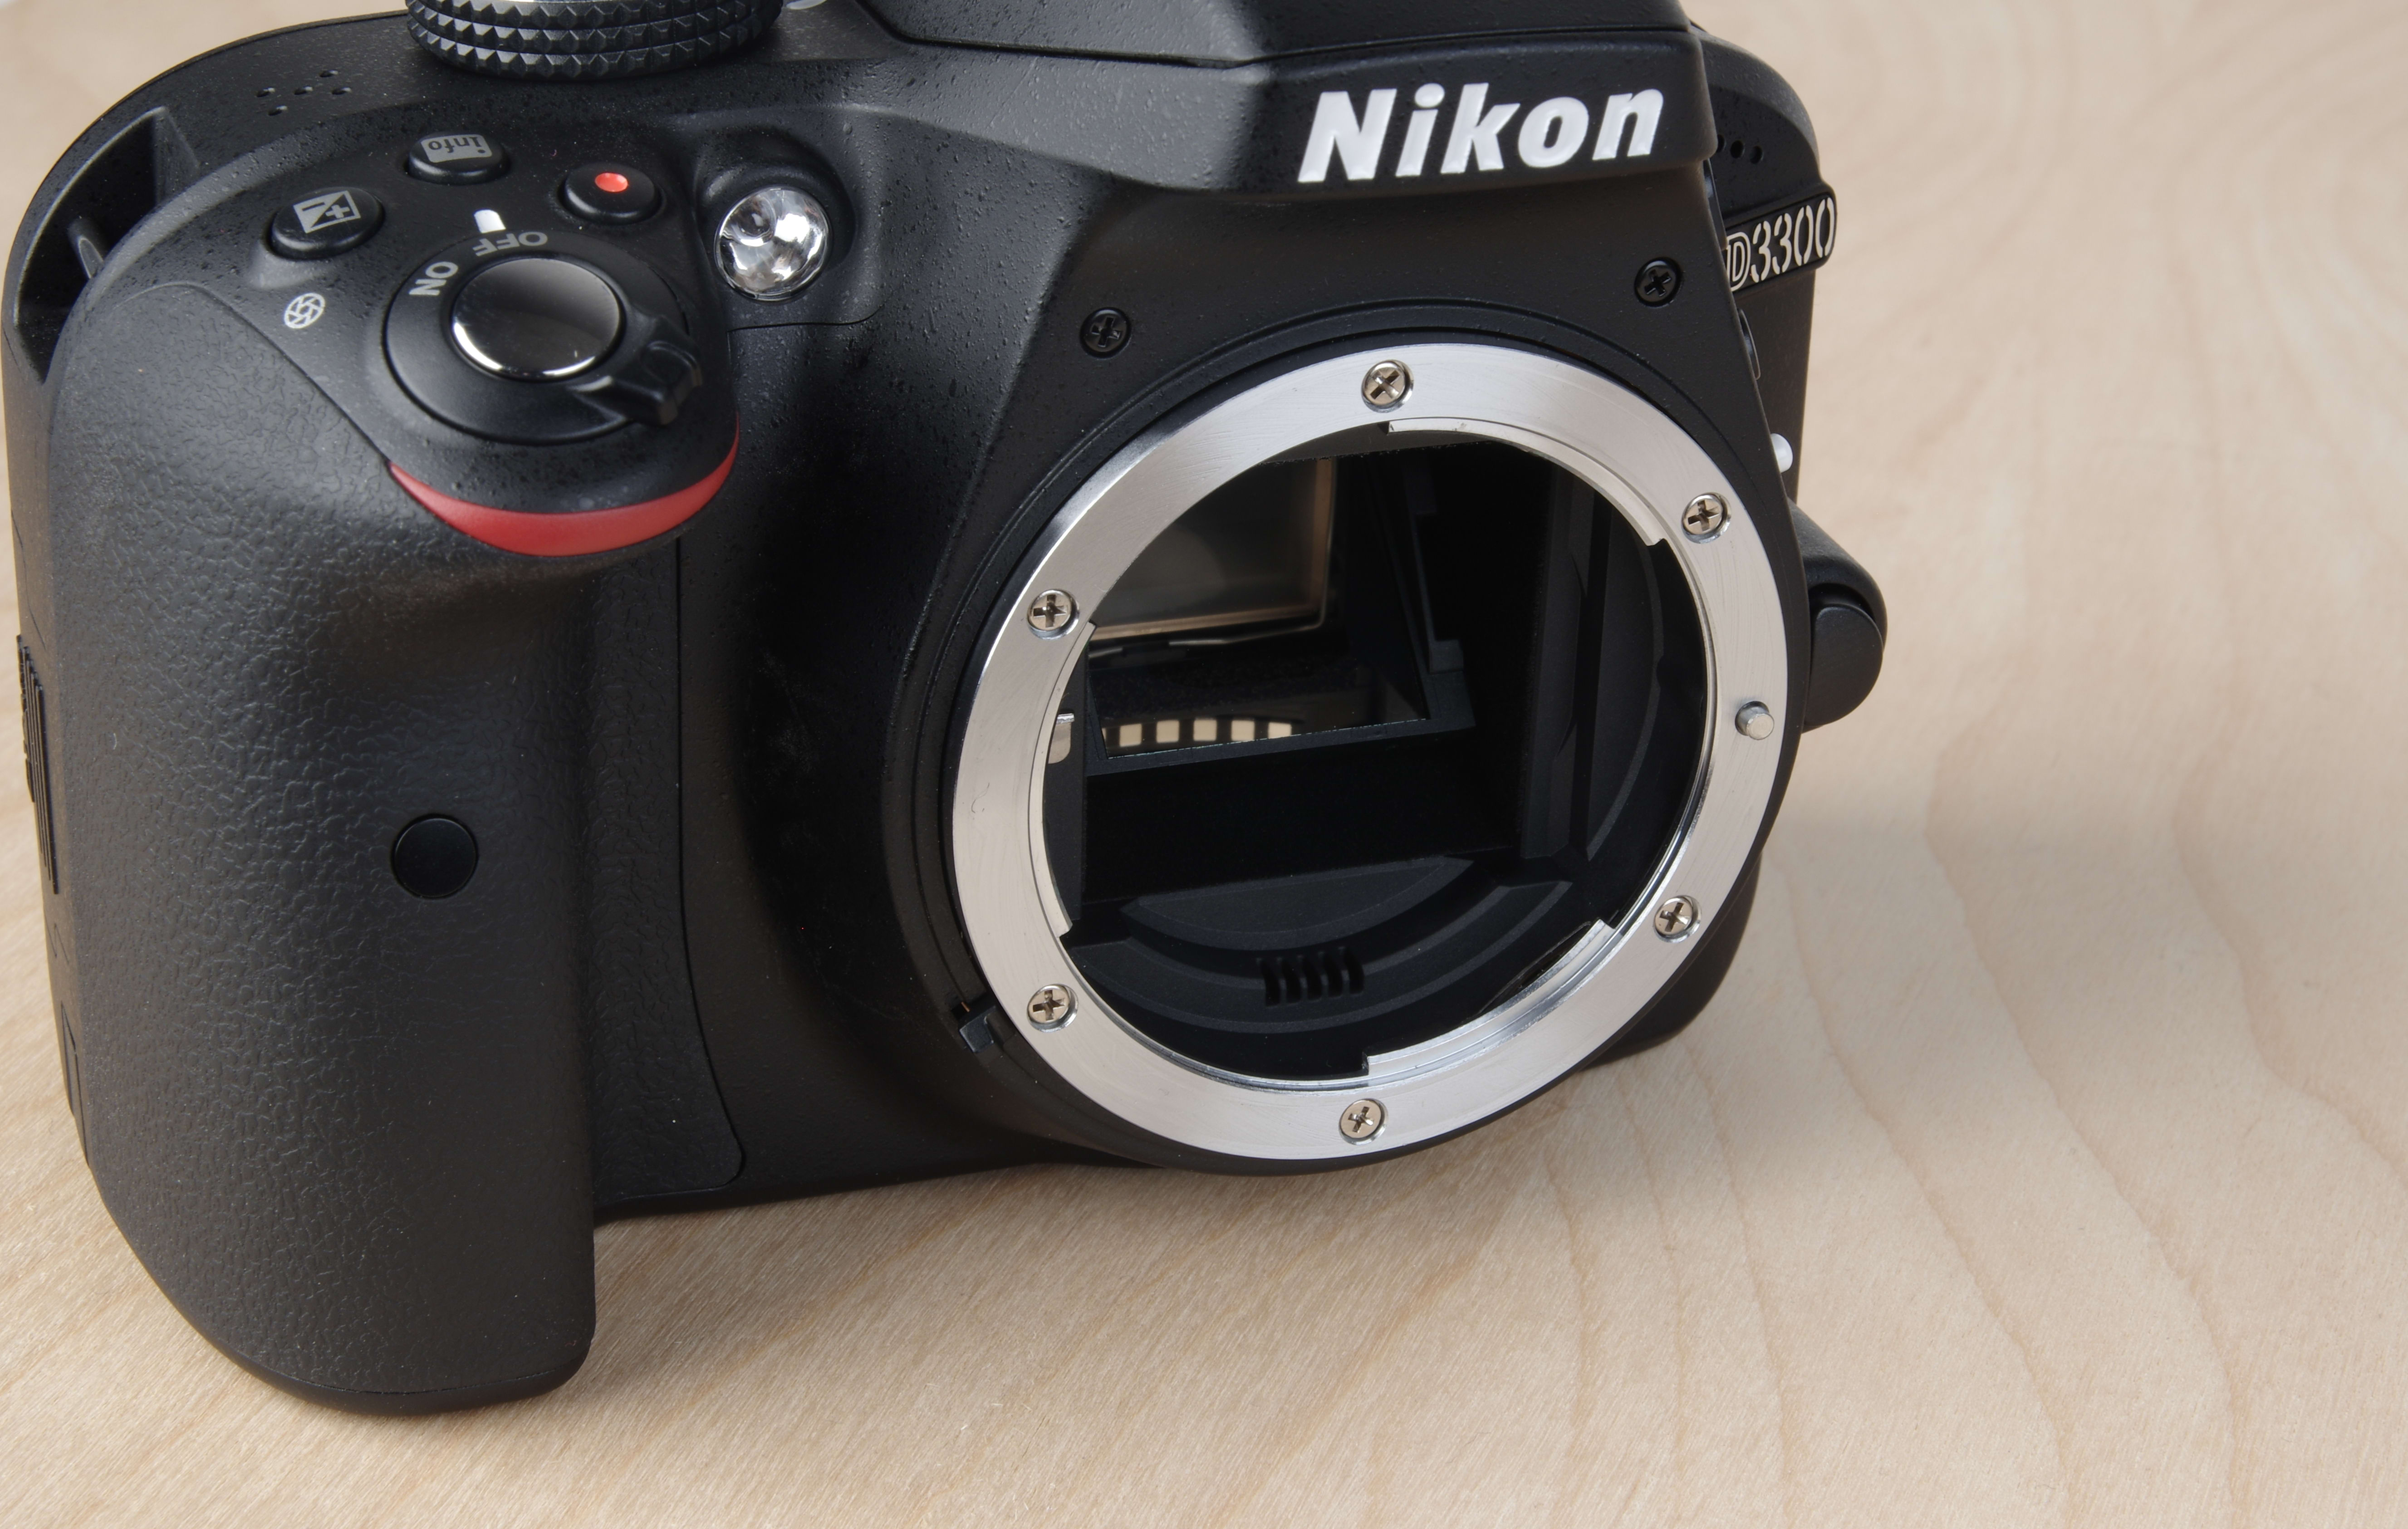 A picture of the Nikon D3300's lens mount.